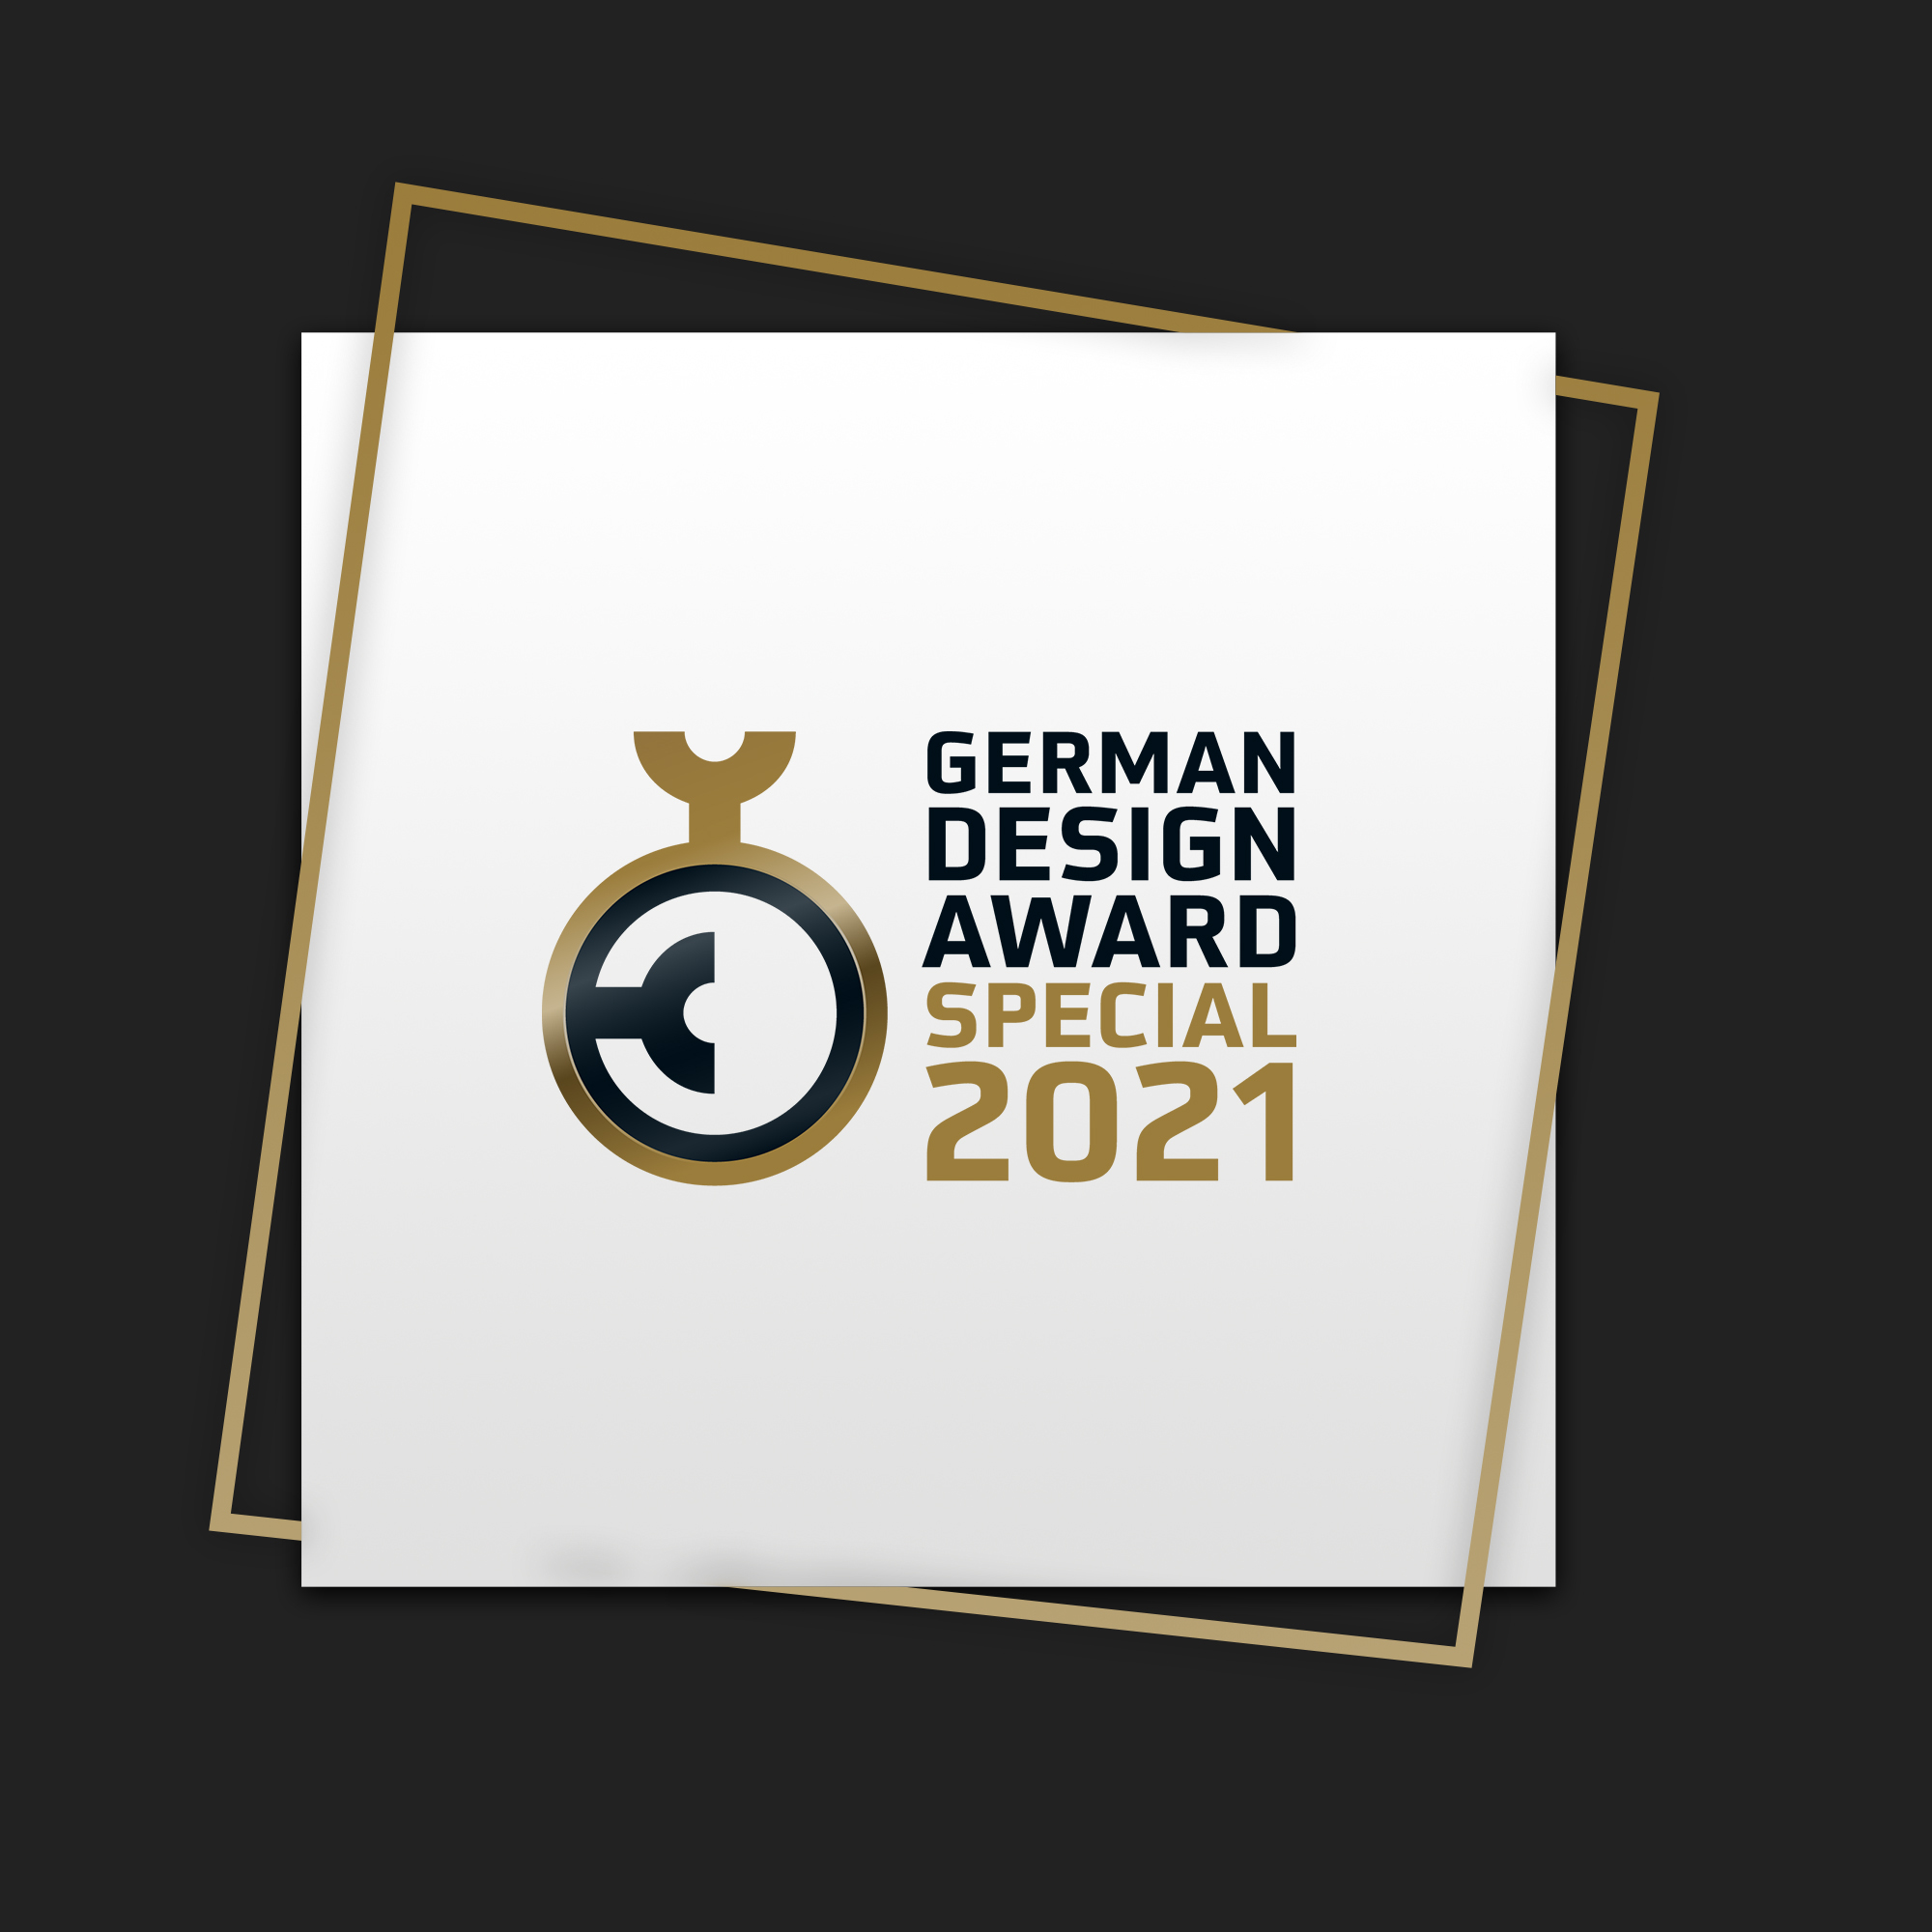 SYMBIOTICON GEWINNT GERMAN DESIGN AWARD 2021